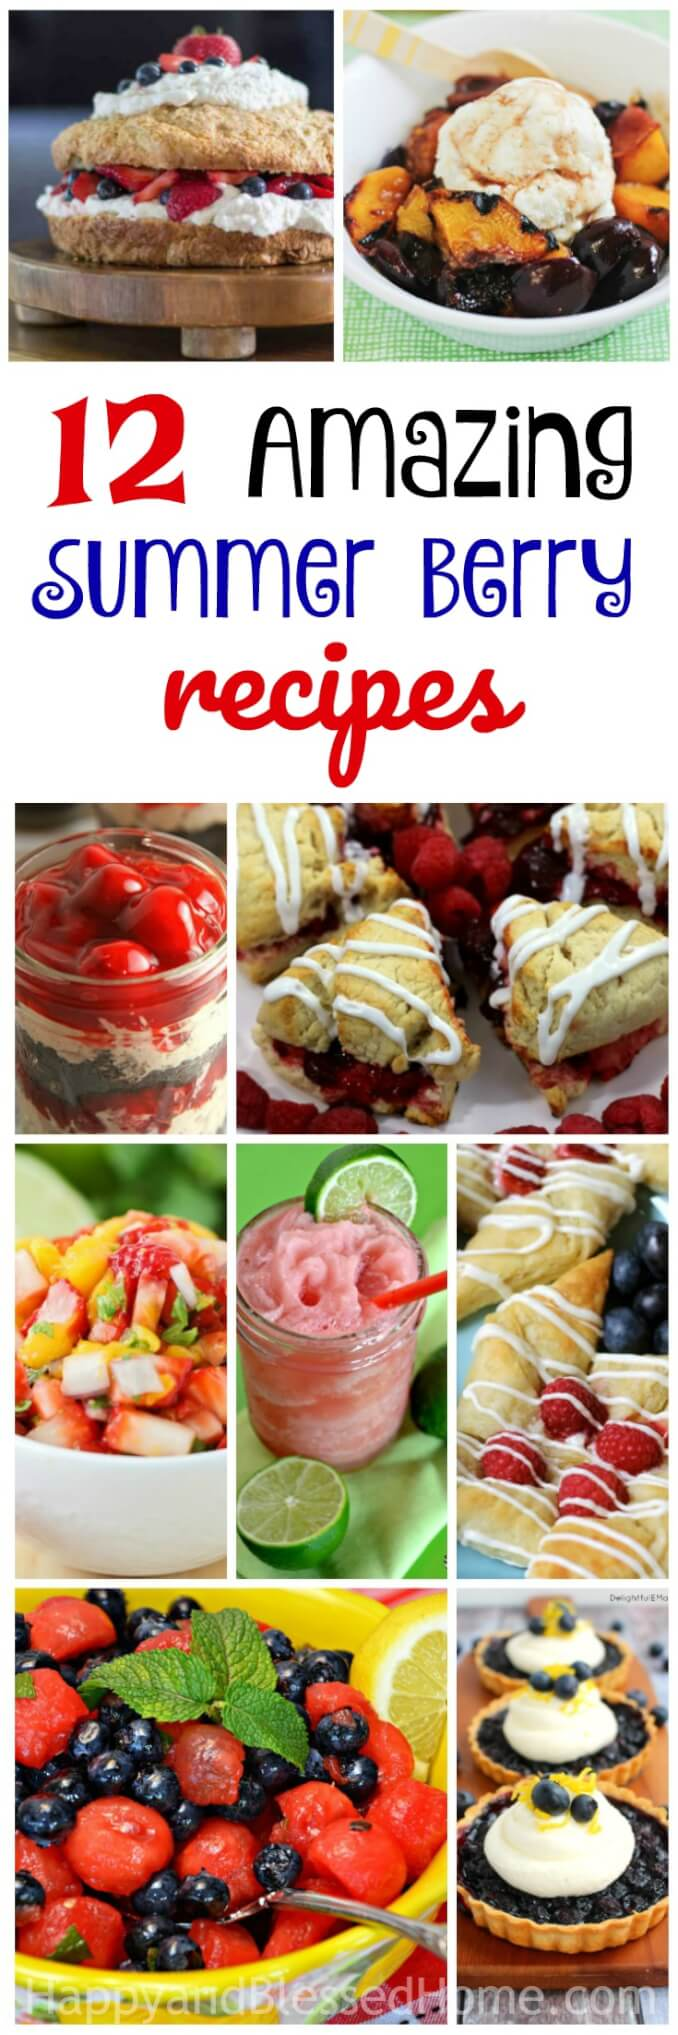 12 Amazing Summer Berry Recipes - things you can make with summer berries